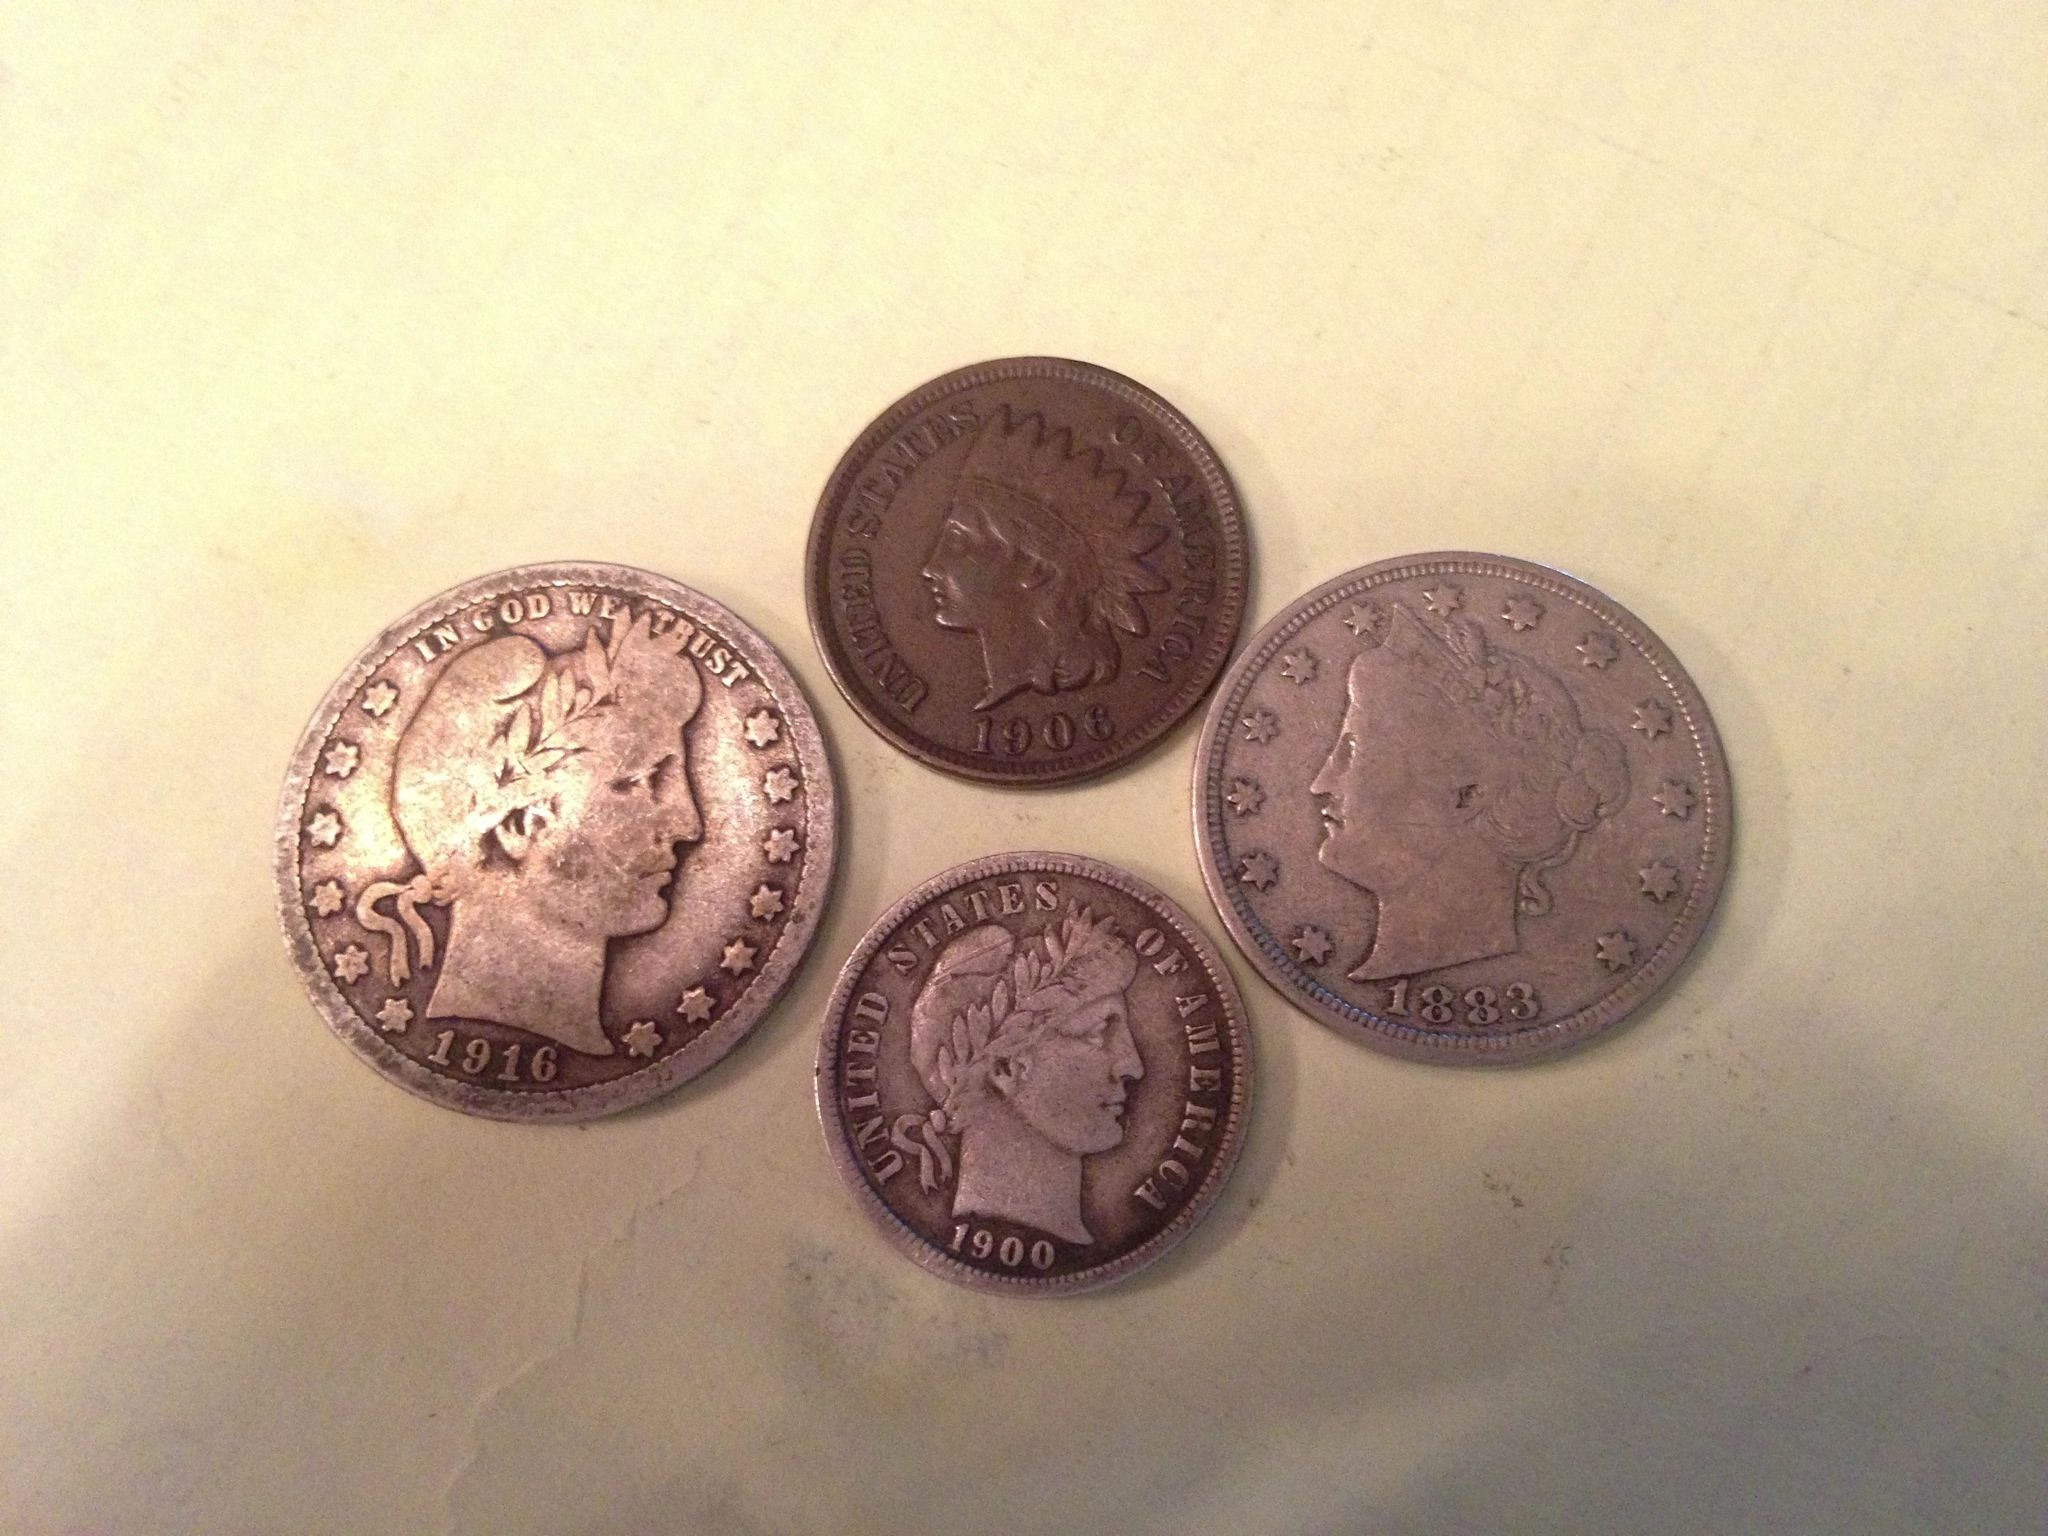 Some Of My Old American Coins Coins American Coins Old Coins